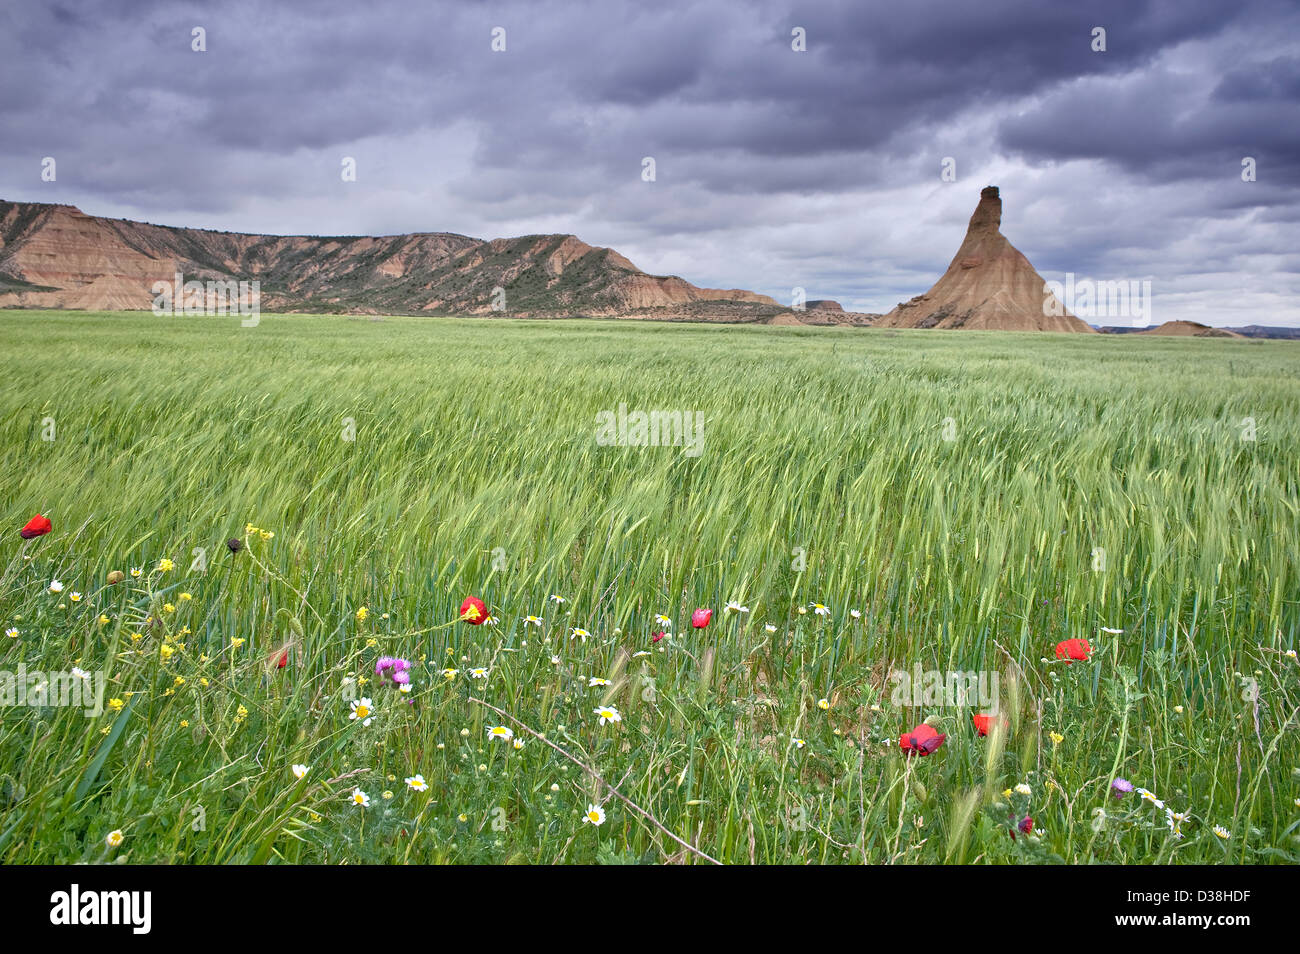 Tall grass blowing in wind - Stock Image